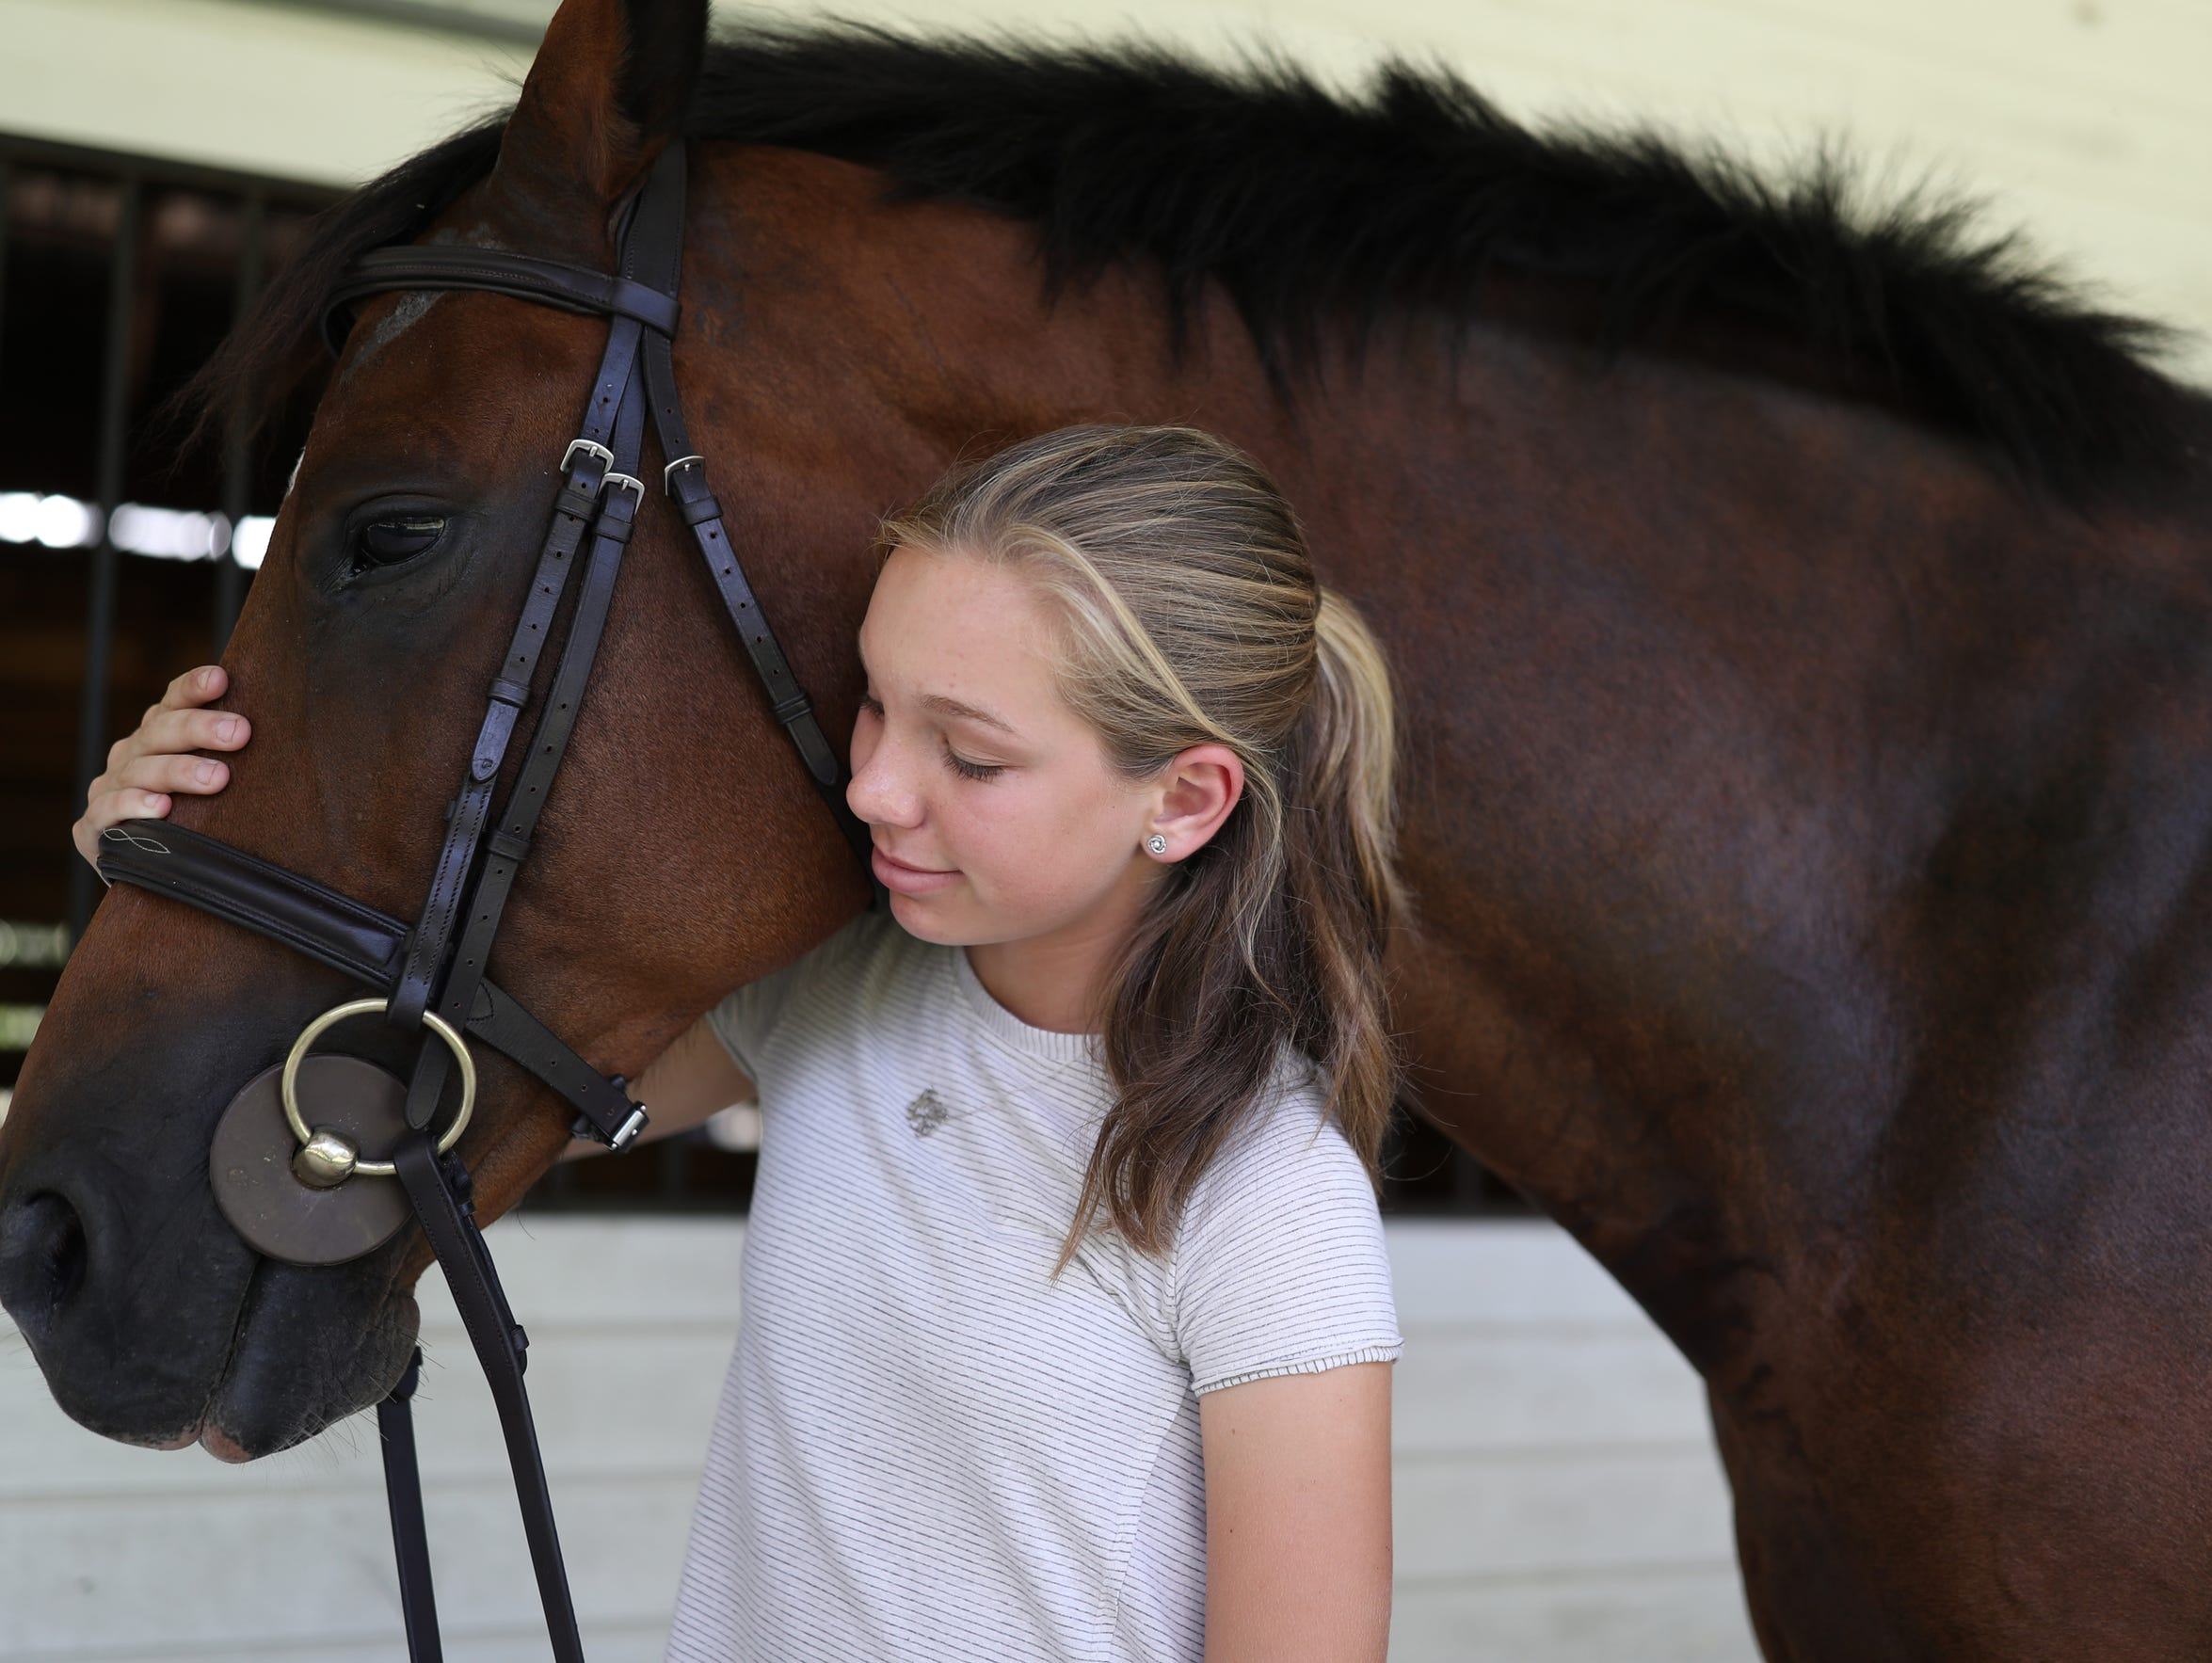 Madeline Jordan, 13, with her horse Bacon on the family